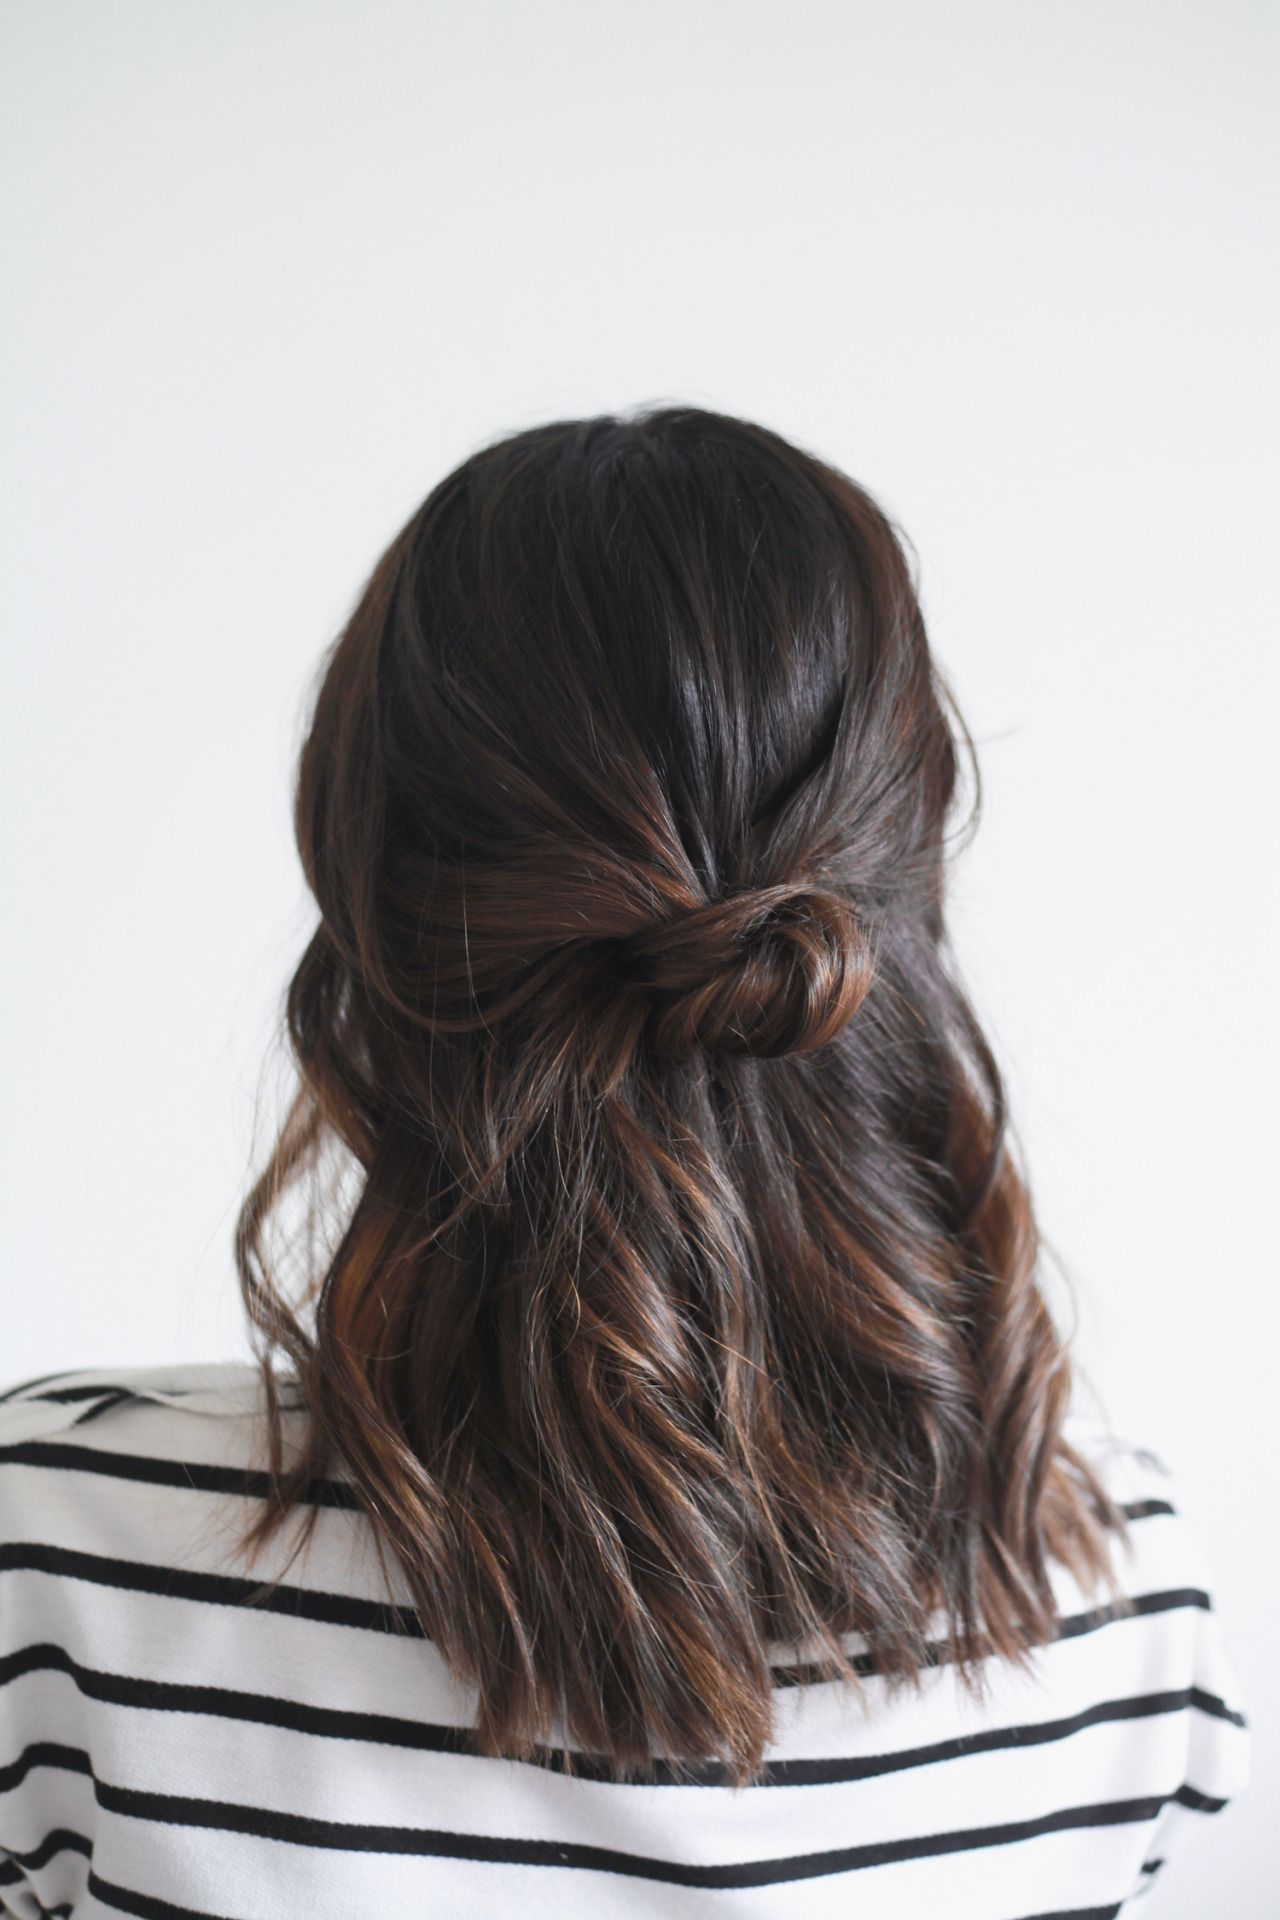 10 #lazygirl hairstyles for chic vacation hair | pinterest | warm